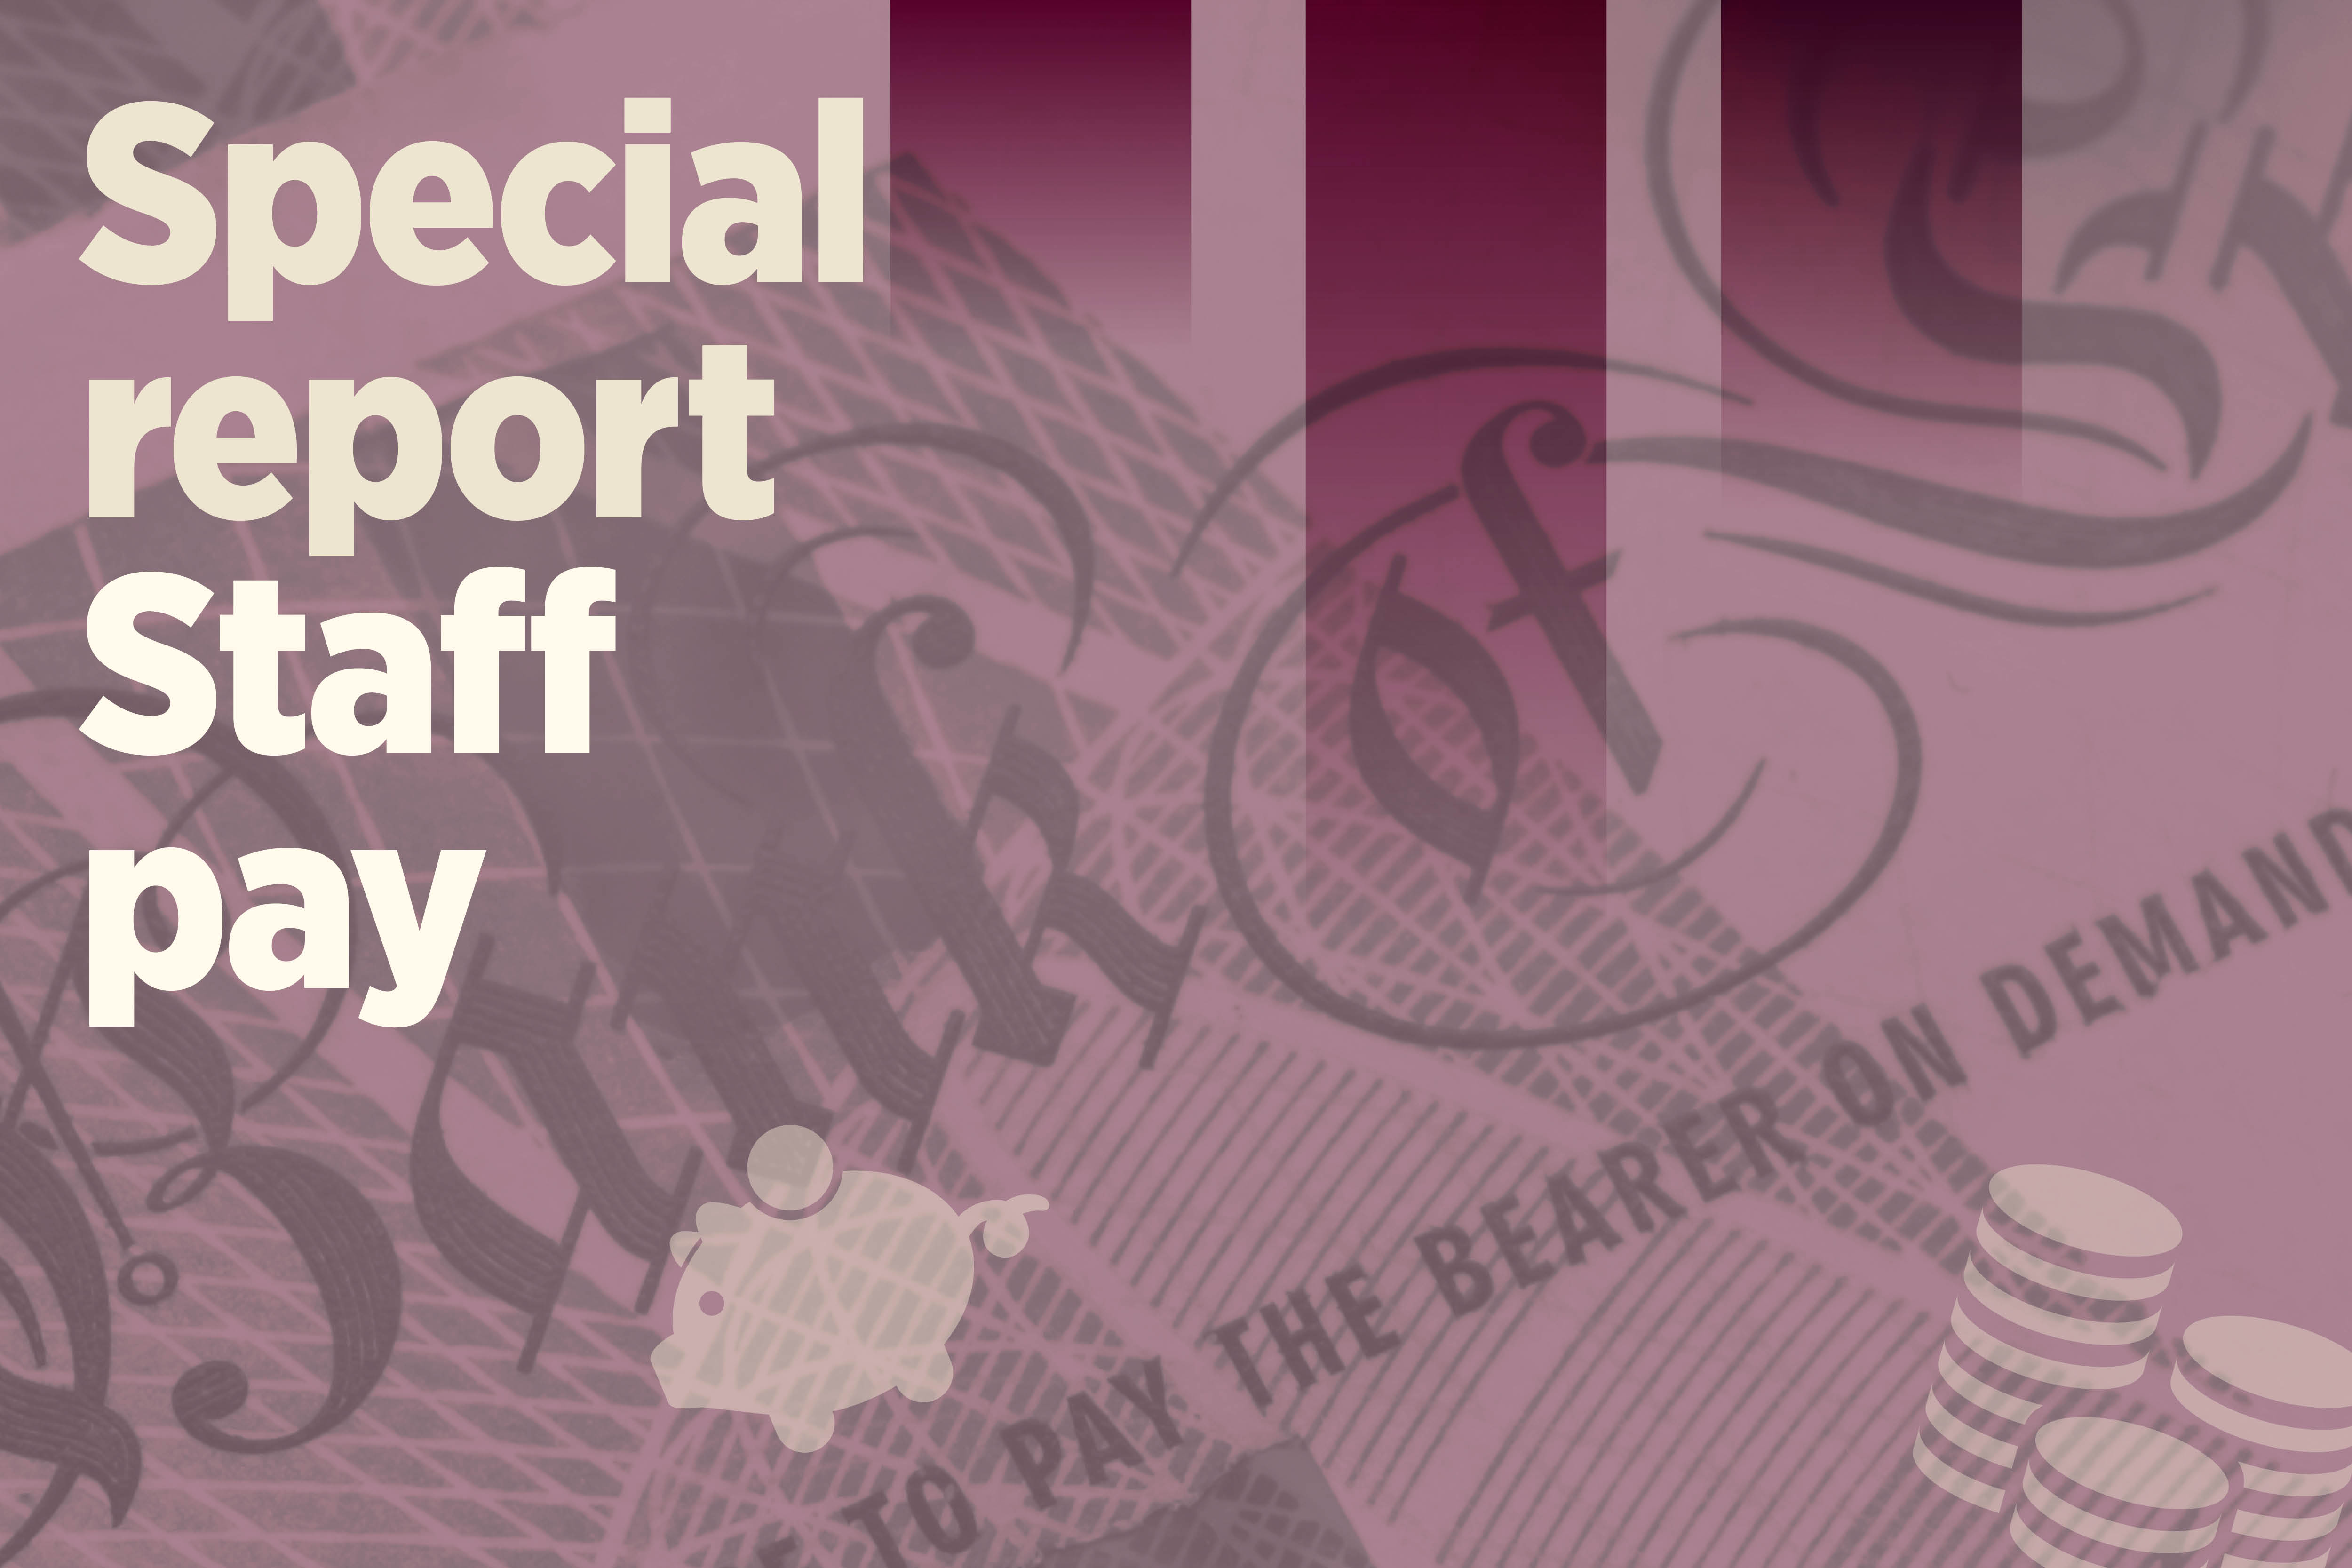 Special report: staff pay rises 3.2% in a year at UK's biggest associations